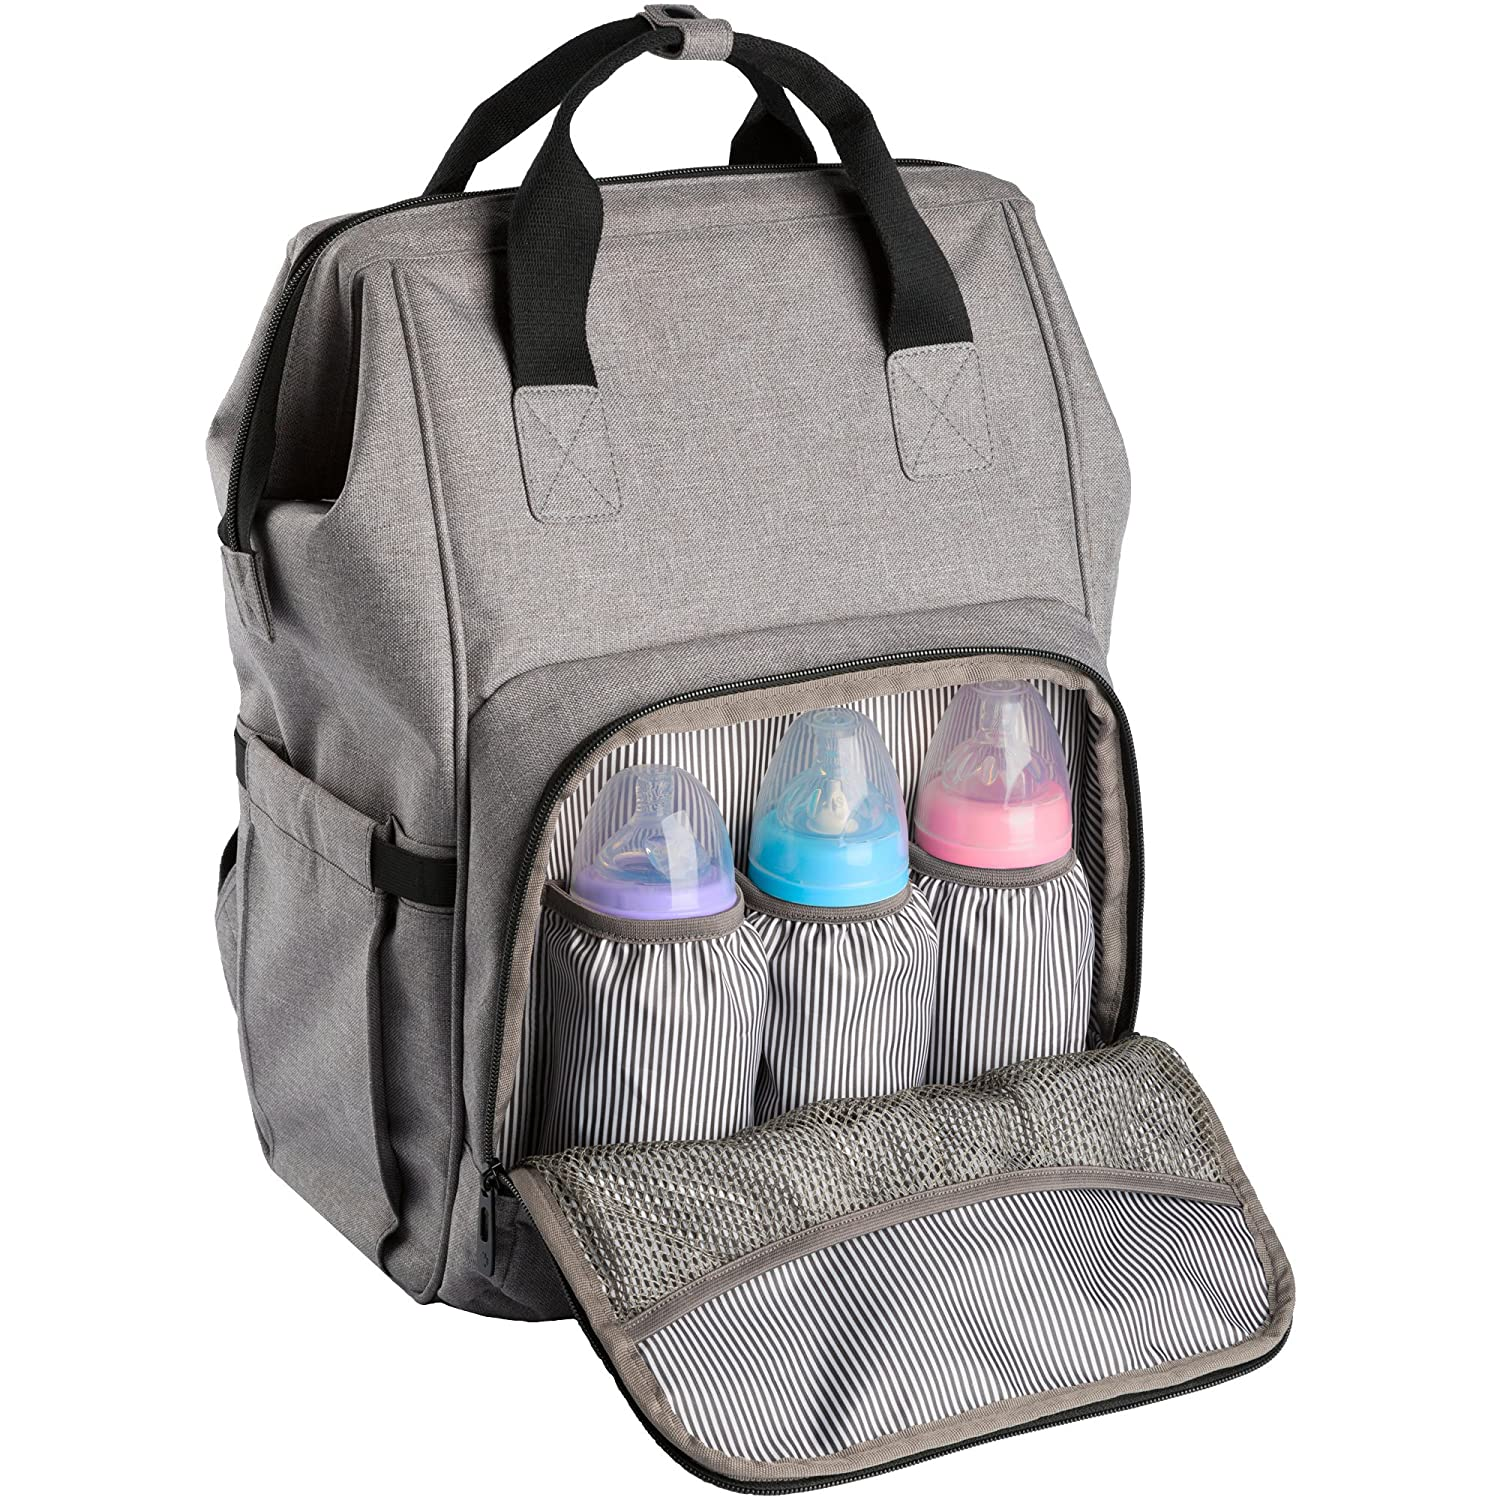 ferlin wide open design baby bag backpack with